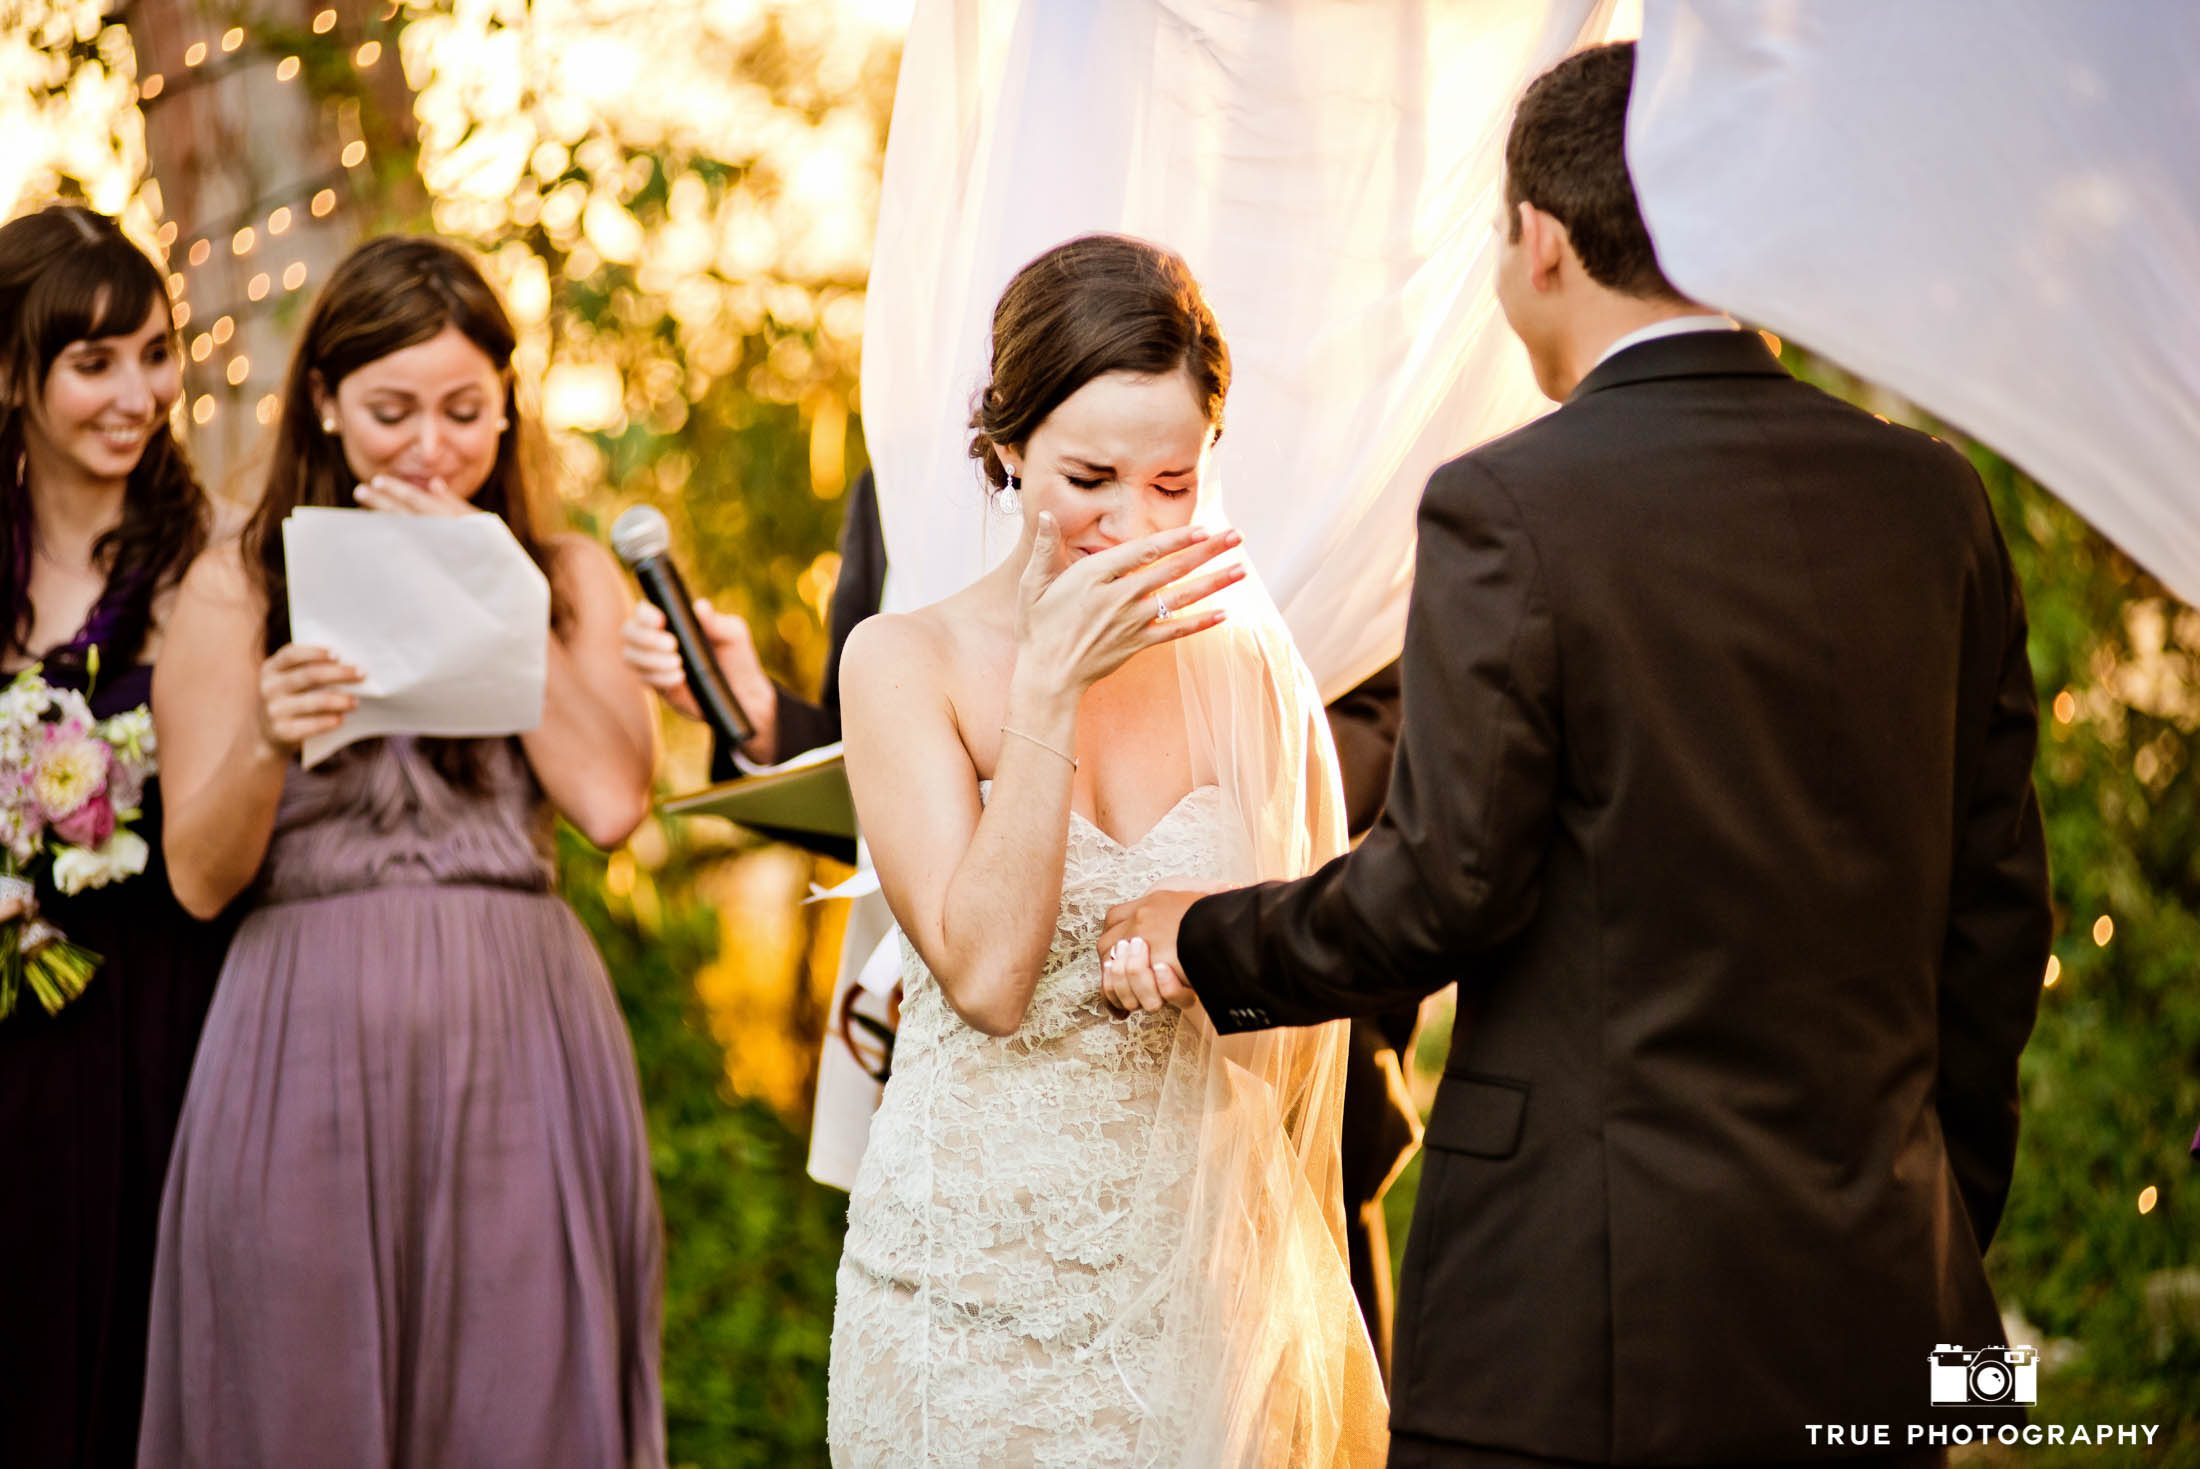 Bride's teary-eyed reaction to Groom during wedding ceremony